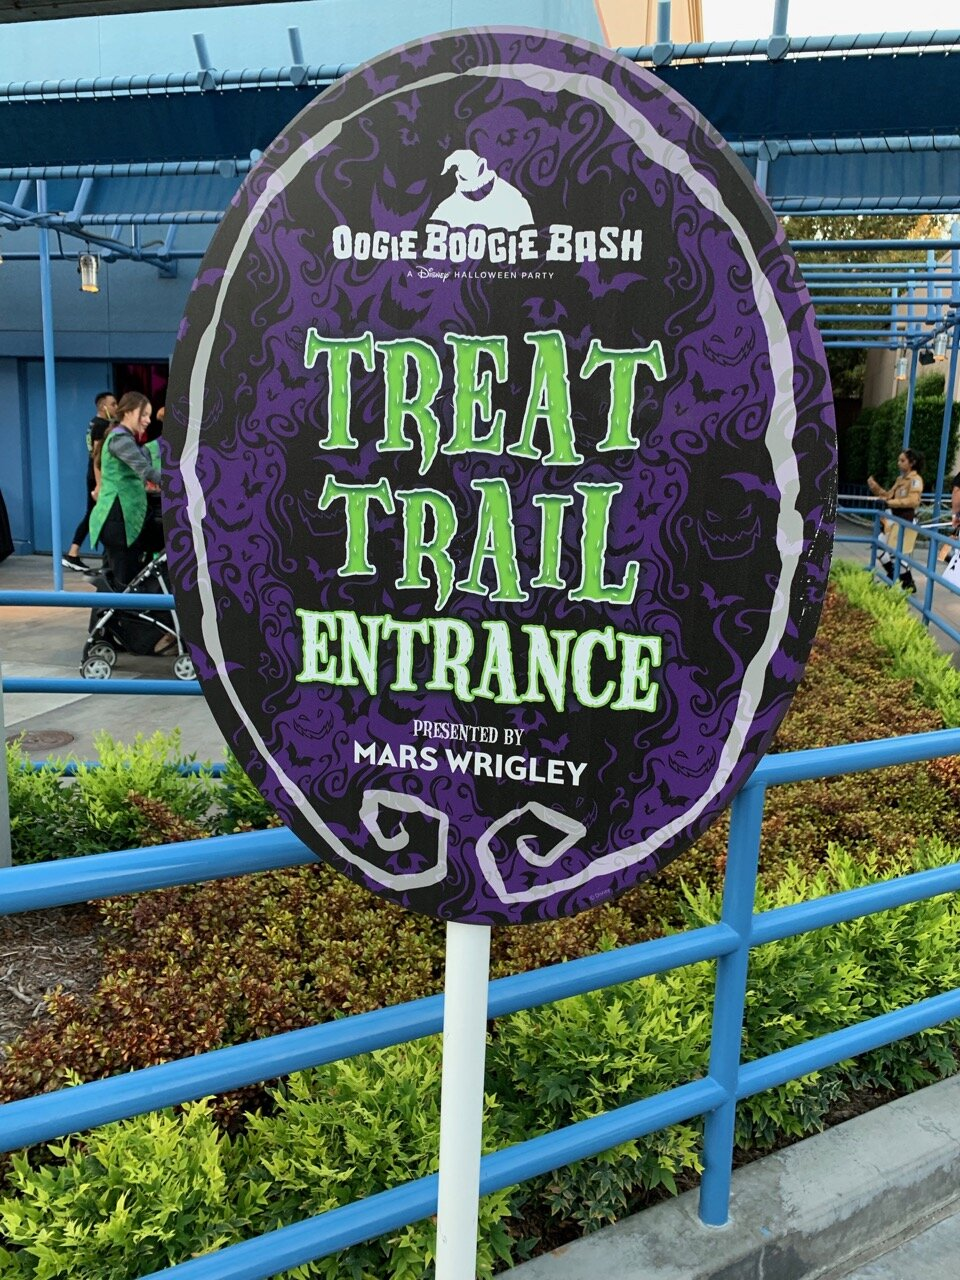 oogie boogie bash 07 treat trail entrance.jpeg